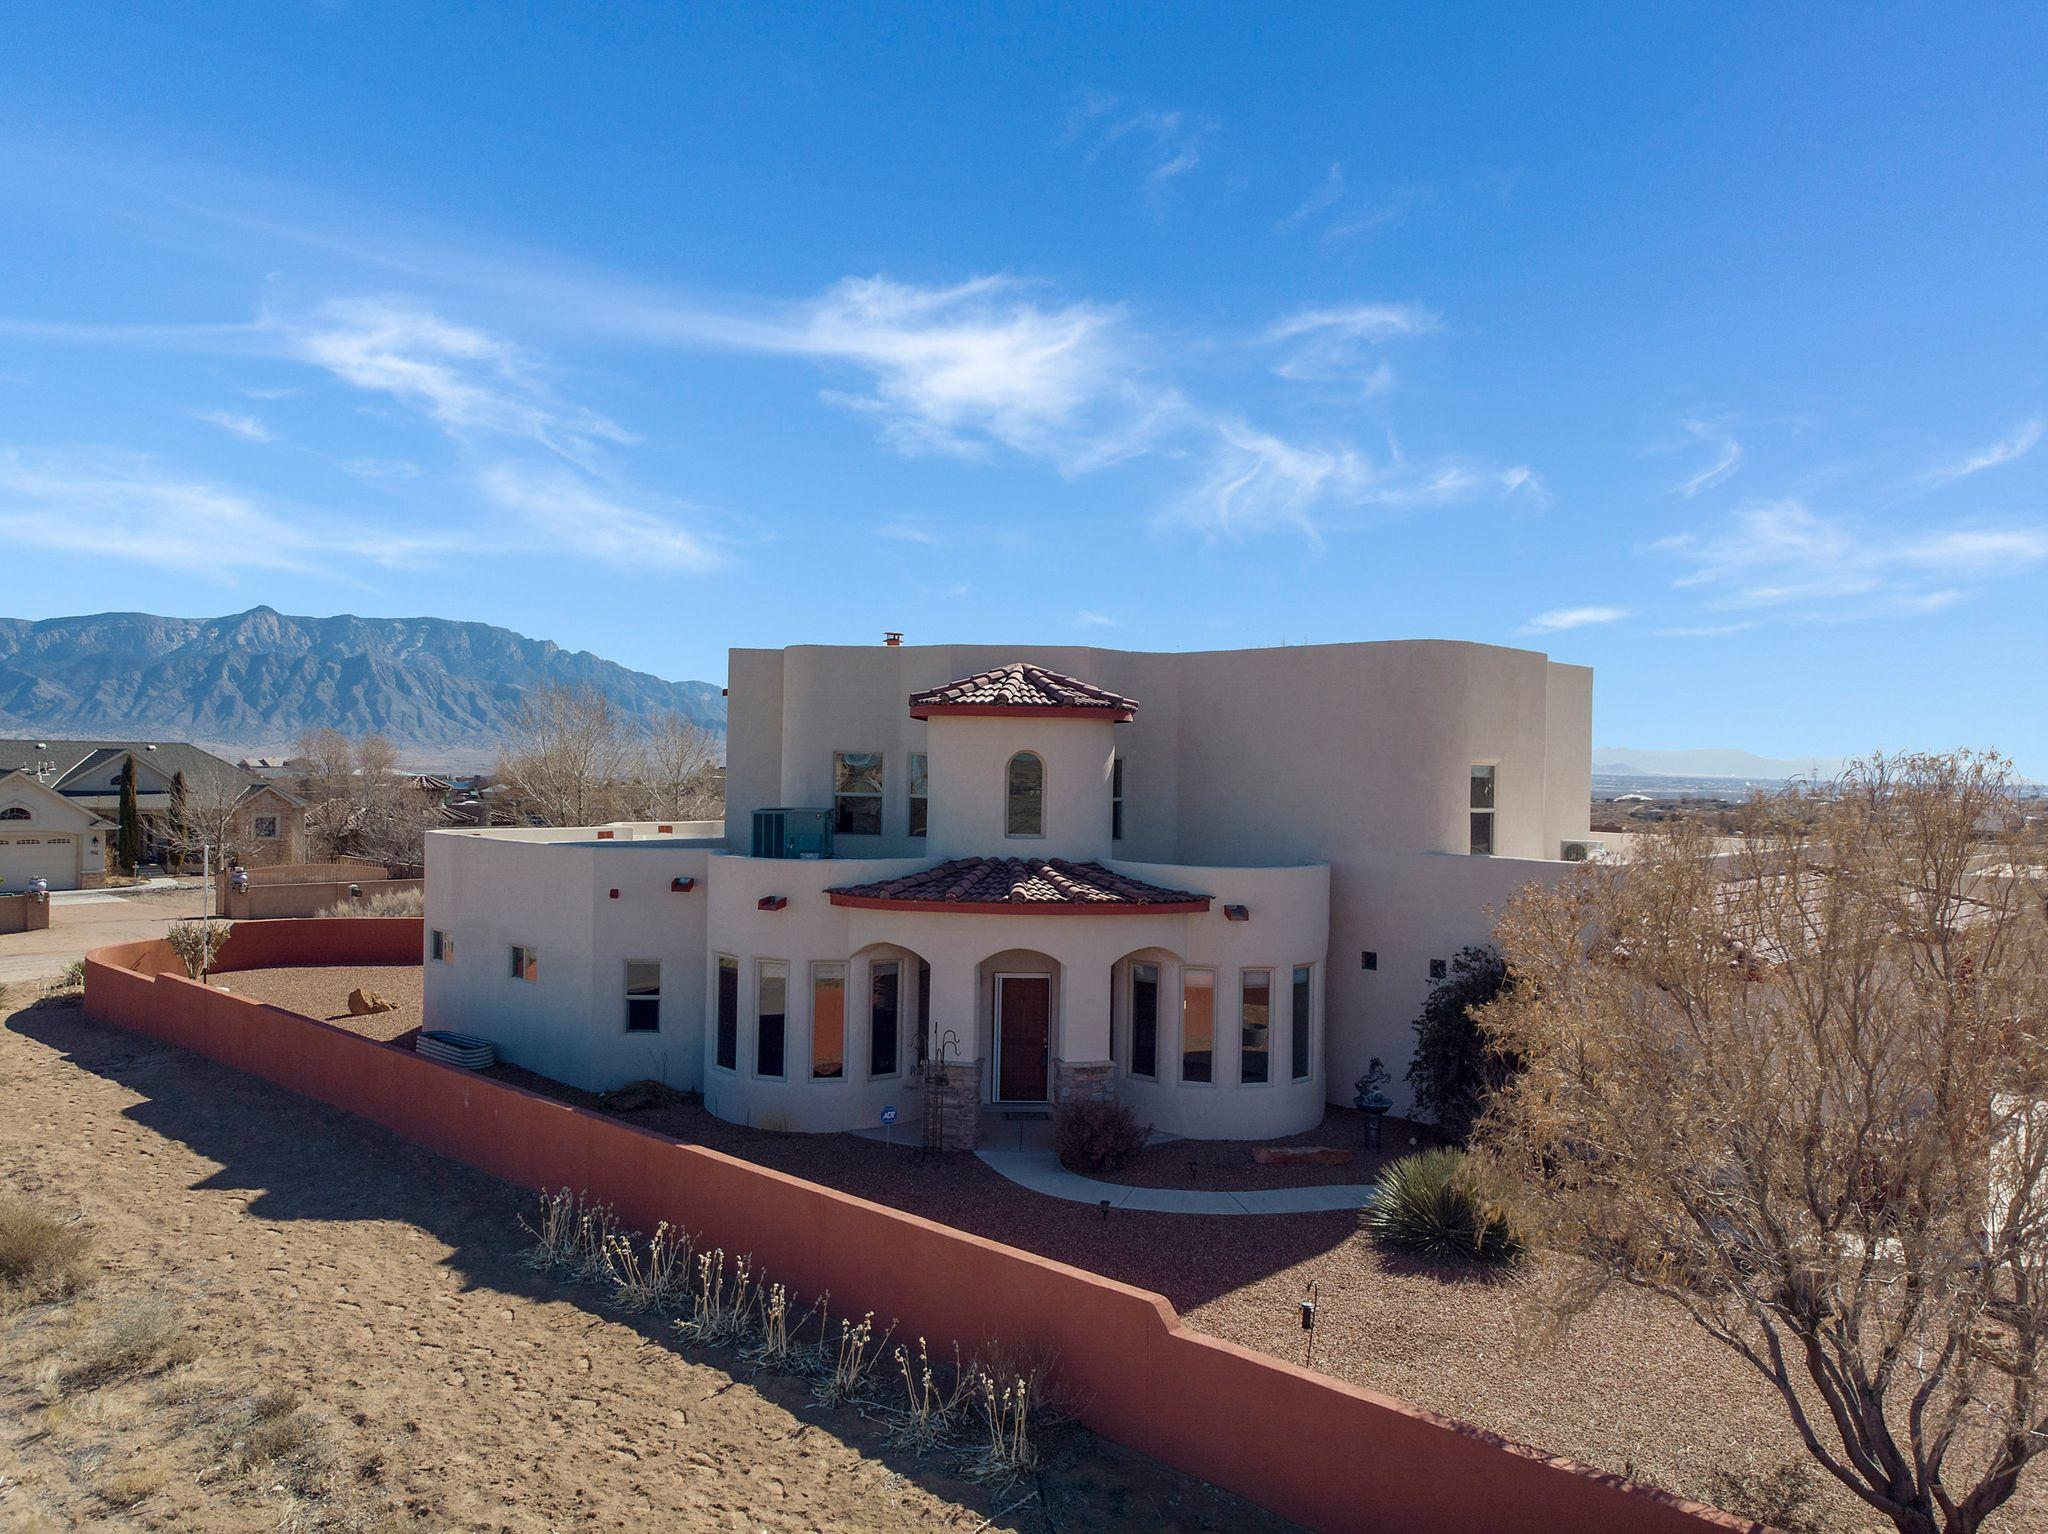 An incredible custom home on half acre lot in RR Estates. Awesome views of the Sandias & City of ABQ from two-level balcony/patio w/ trex flooring on top level. Main floor features a round turret-style foyer w/ open, large Living Room w/ Kiva-styled fireplace, nursery, large Master suite, Formal DR, 880 sq ft rec room w/ built-in bookcase & wet bar, large Kitchen w/ island, pantry & breakfast nook. Upstairs has Loft, Kids Den, & two spacious BRs. Oversized detached 3-car gar w/ lots of space for workshop & a drive-thru attached  1+ car garage. House has 32 owned hidden solar panels that lowers utilities, 10x20 covered pergola, fruit trees, 4 elevated 365-day gardens w/ built-in drip system, thermostat & heater. Two chip-sealed driveways, both lined w/ raised flower beds & so much more!